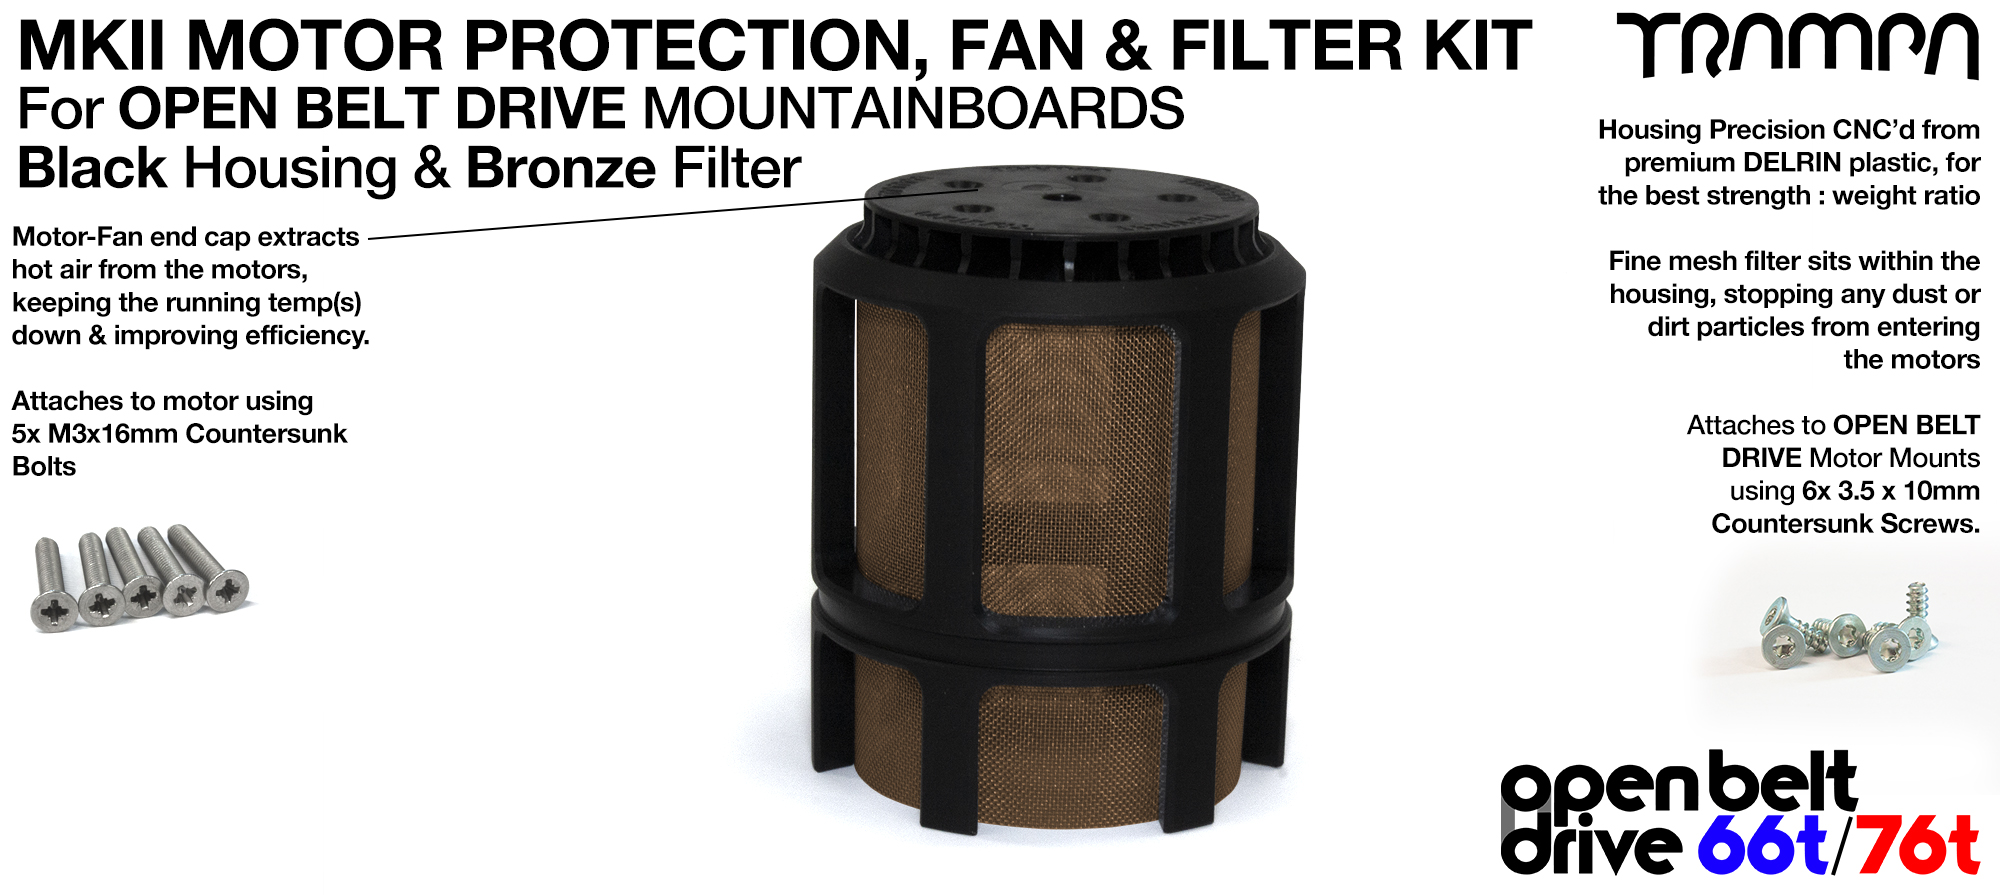 1x OBD MKII Motor protection Sleeve with BRONZE Filter